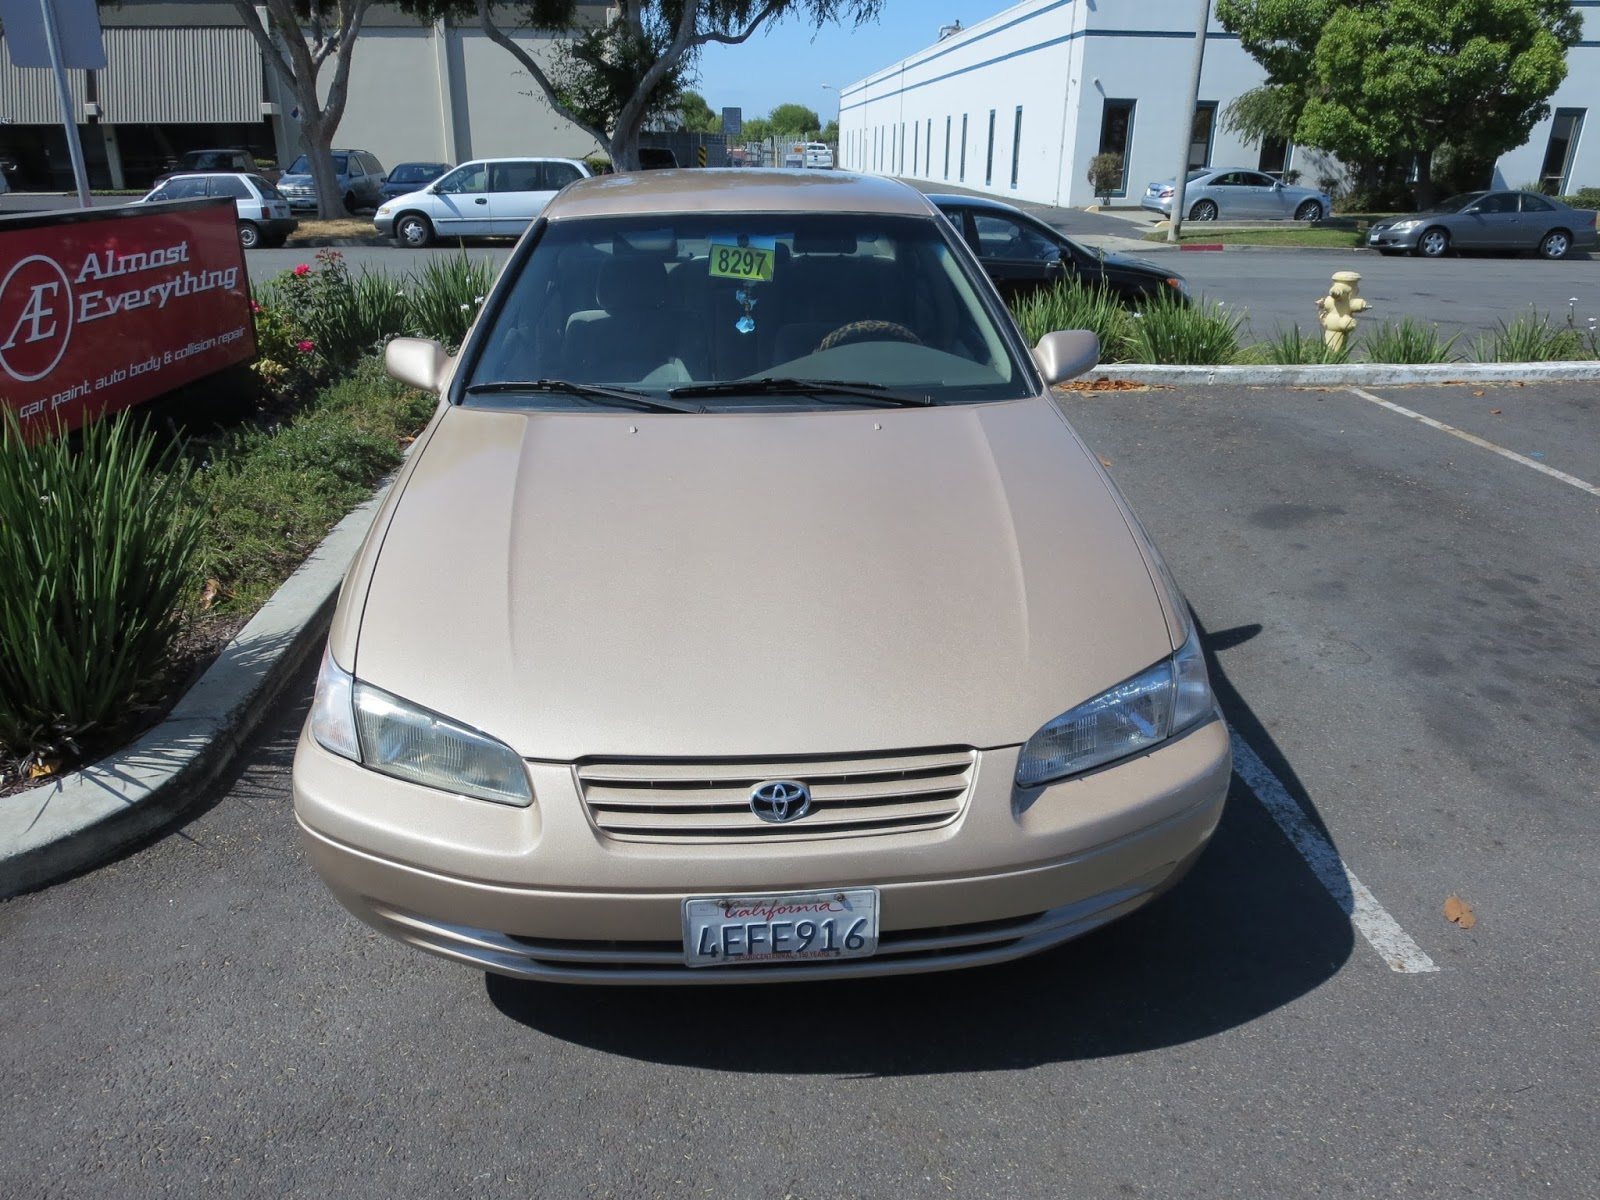 Union City Car Dealerships >> Auto Body-Collision Repair-Car Paint in Fremont-Hayward ...